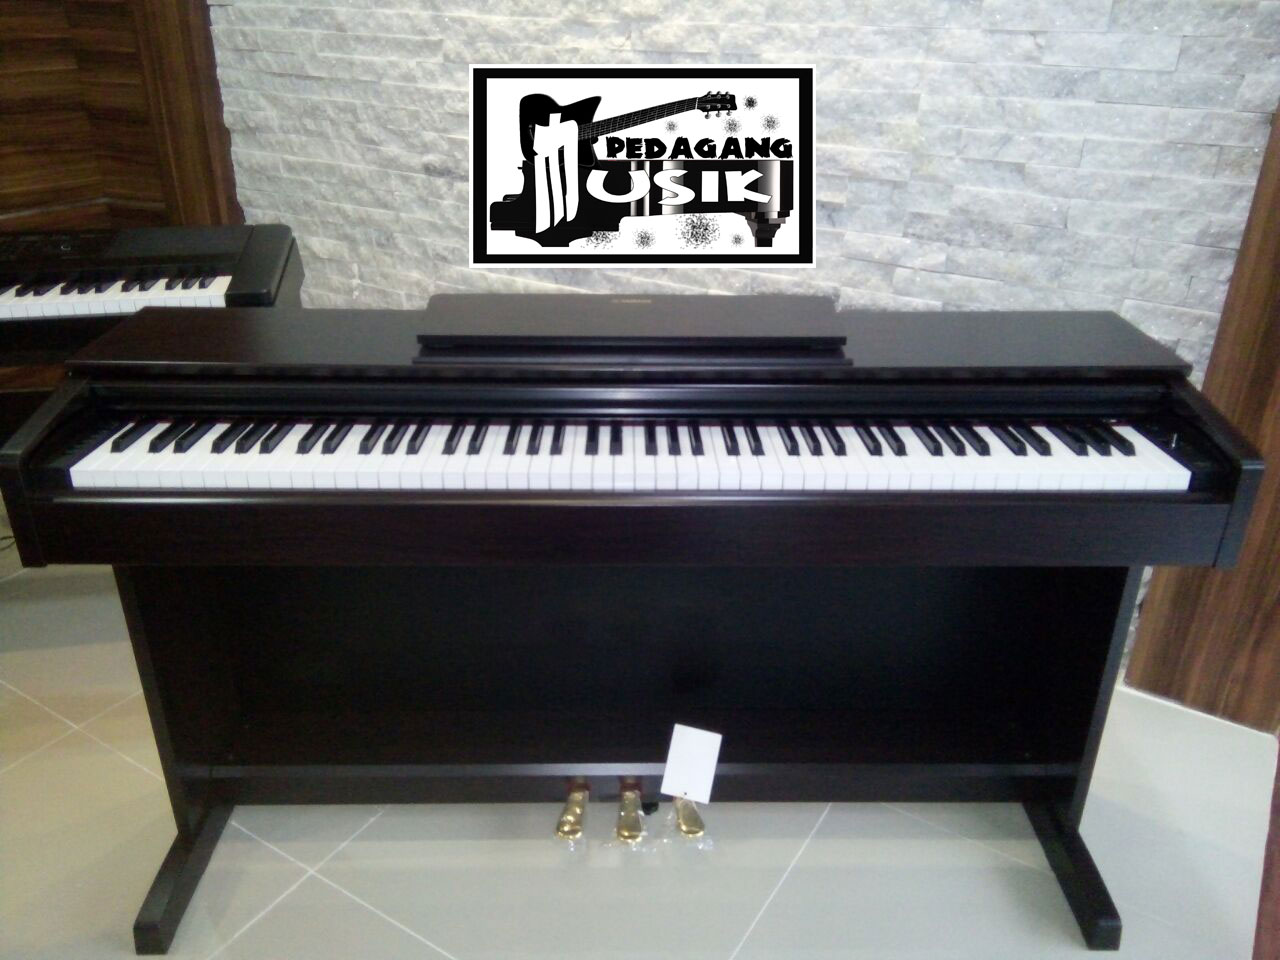 jual baru yamaha digital piano segel garansi 1 tahun ydp143 digital piano yamaha ydp. Black Bedroom Furniture Sets. Home Design Ideas